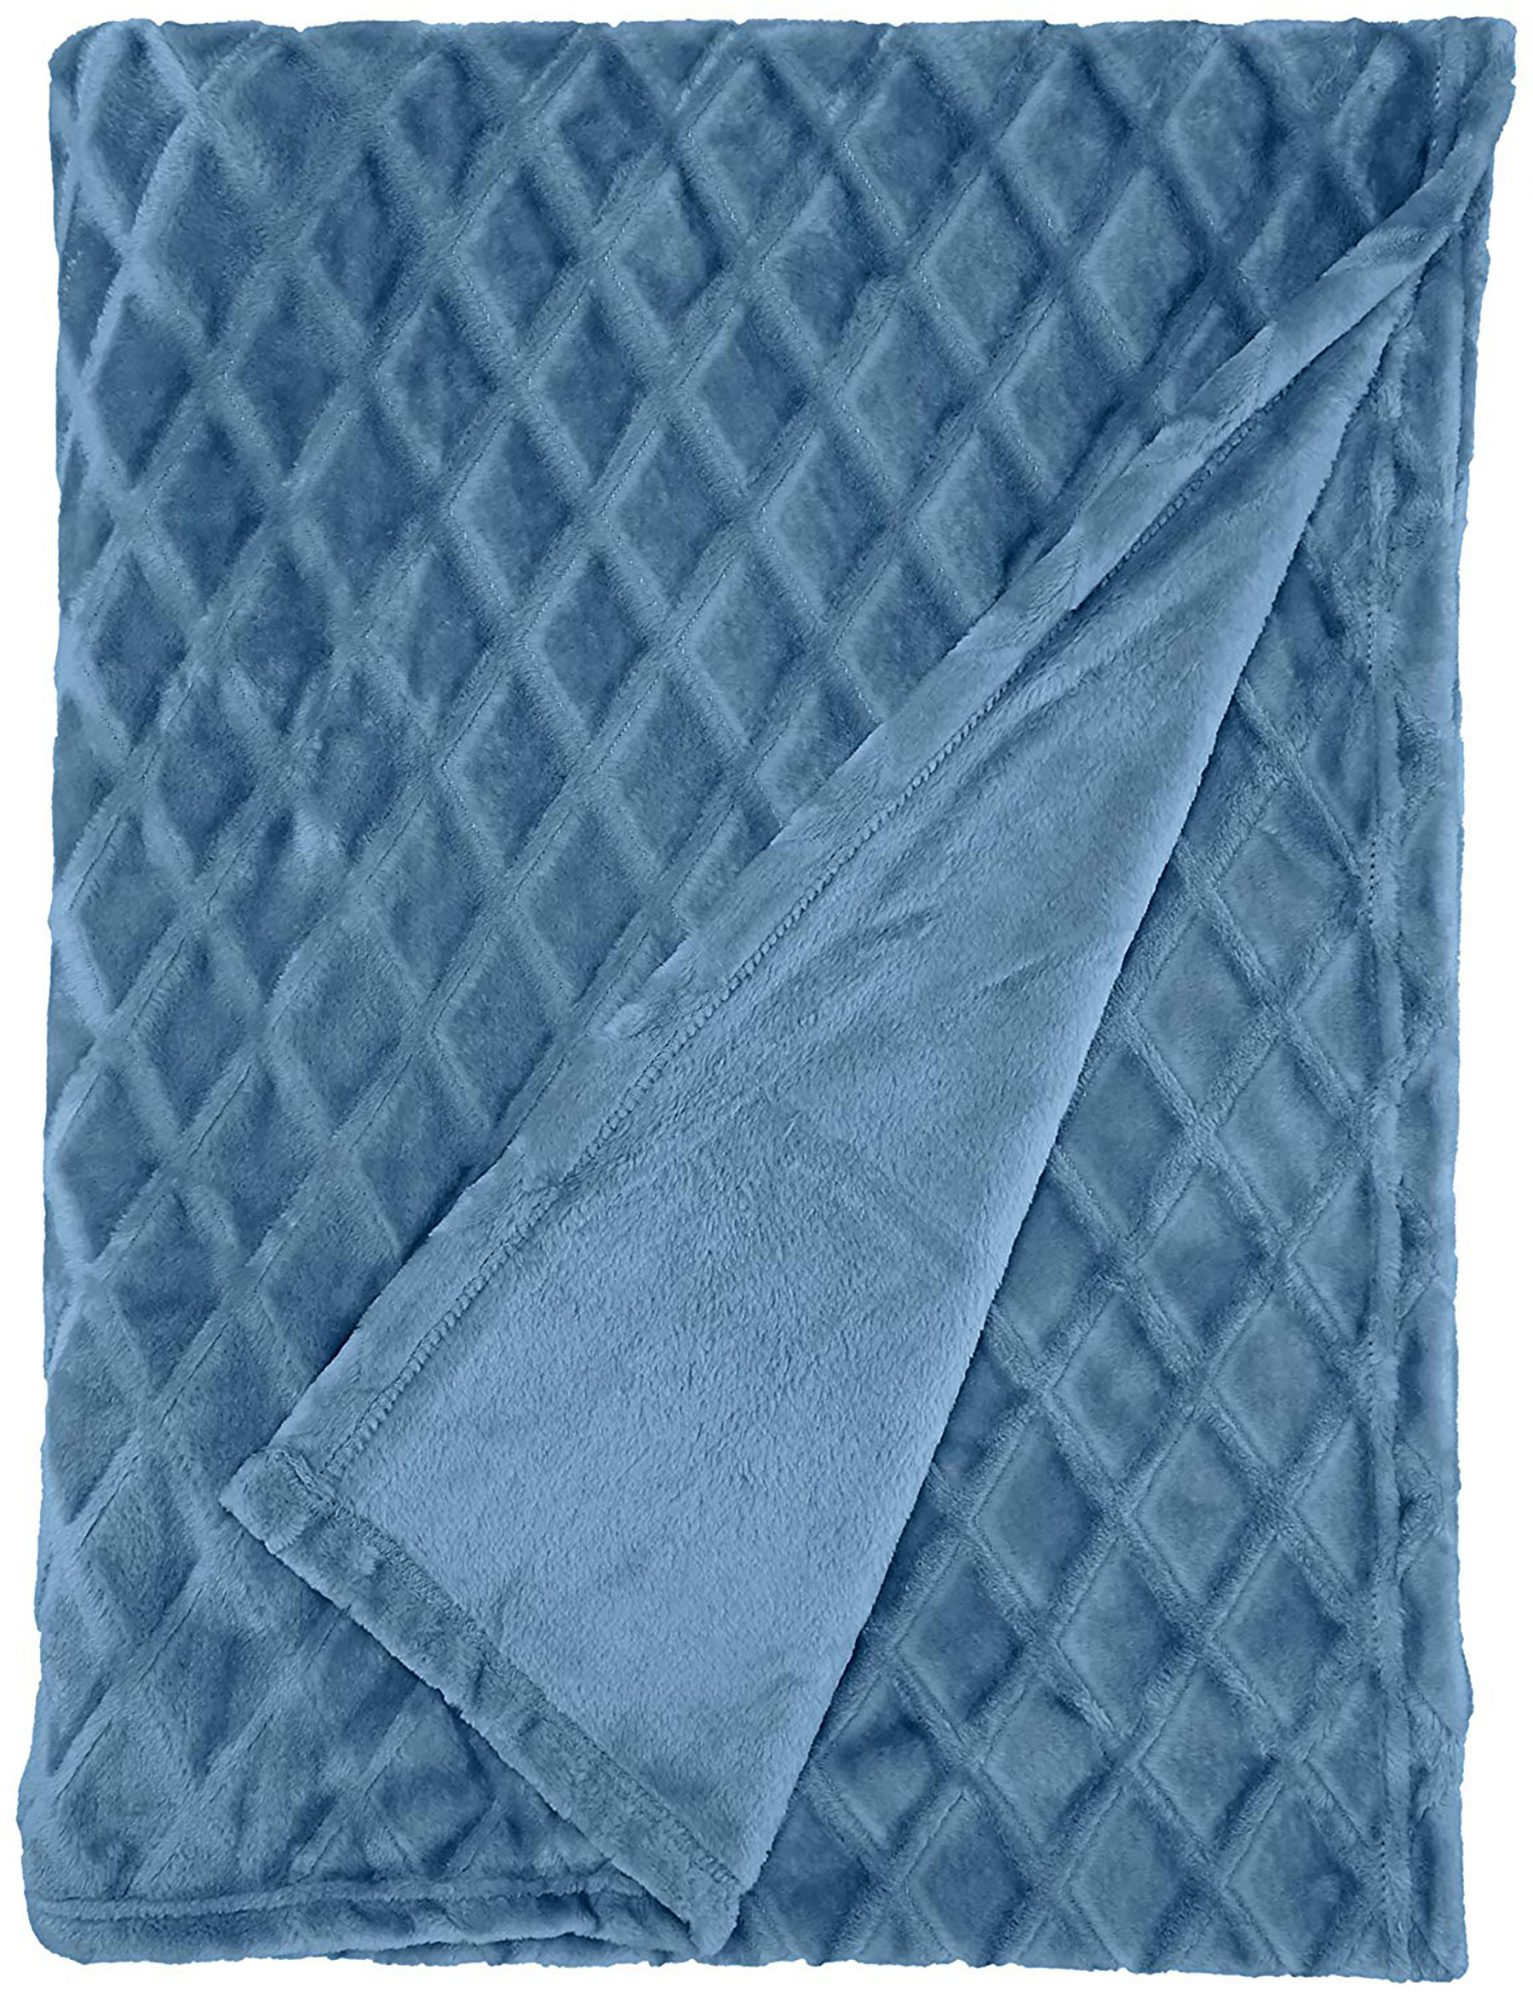 https://www.amazon.com/Northpoint-Ardour-Diamond-Embossed-Velvet/dp/B00YAES6M6/